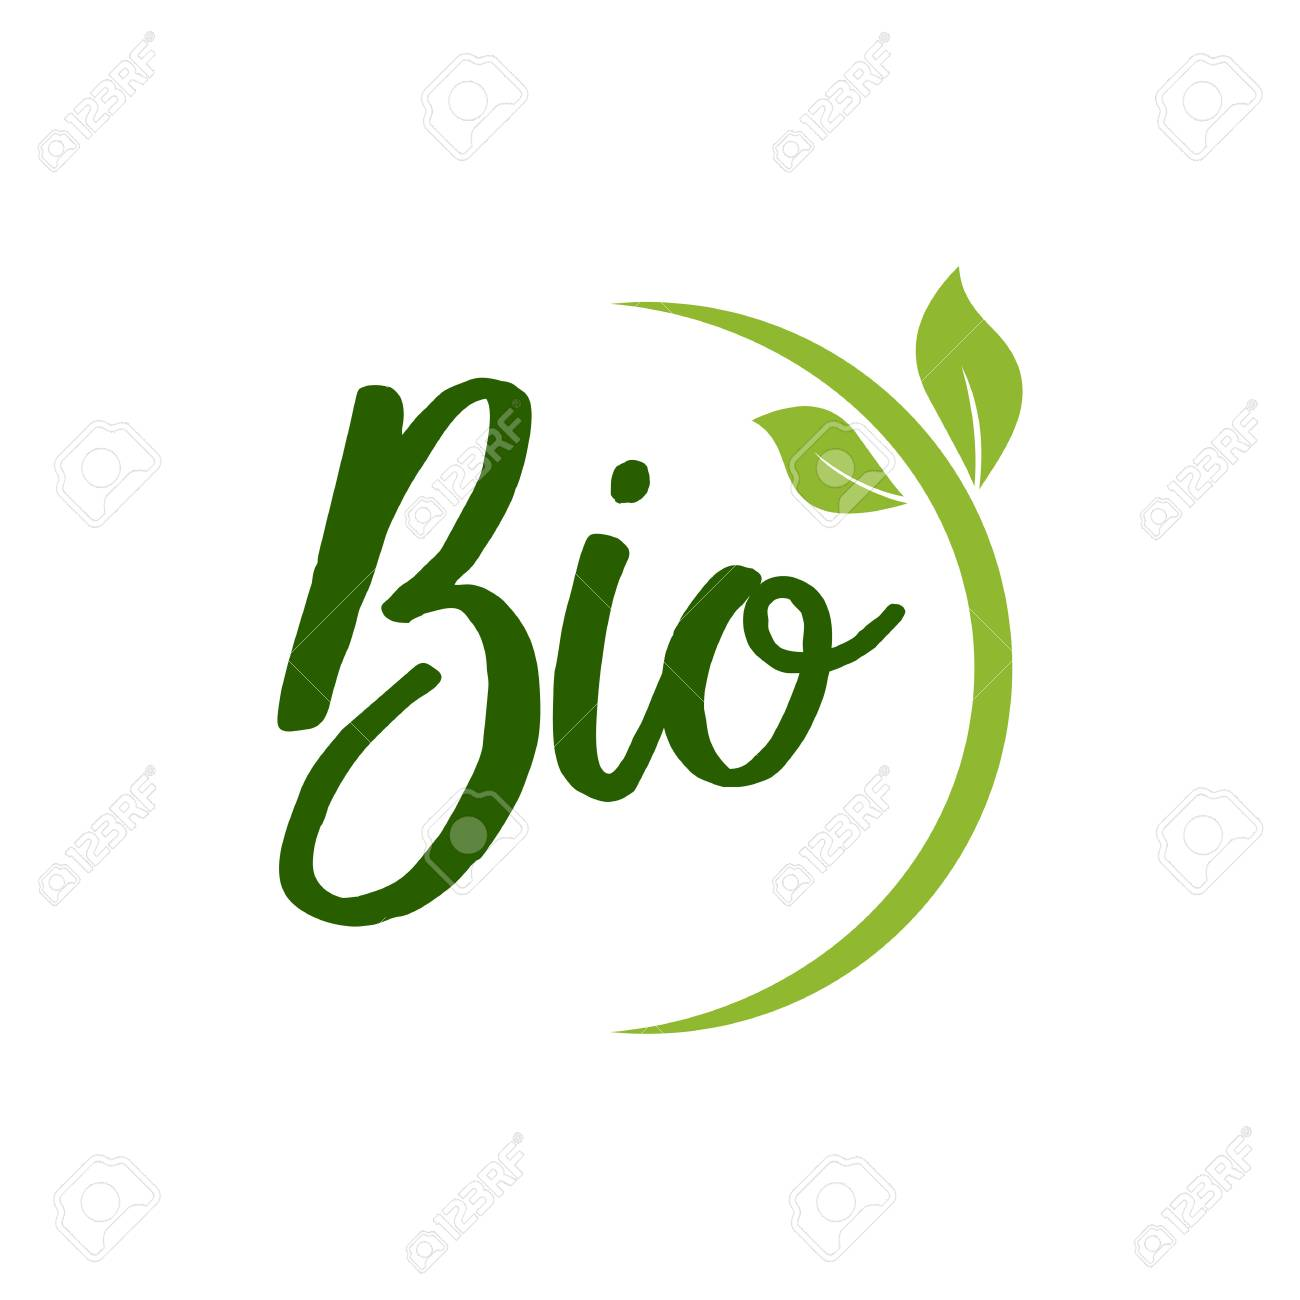 Bio Lettering with Green Leaves - 93339686